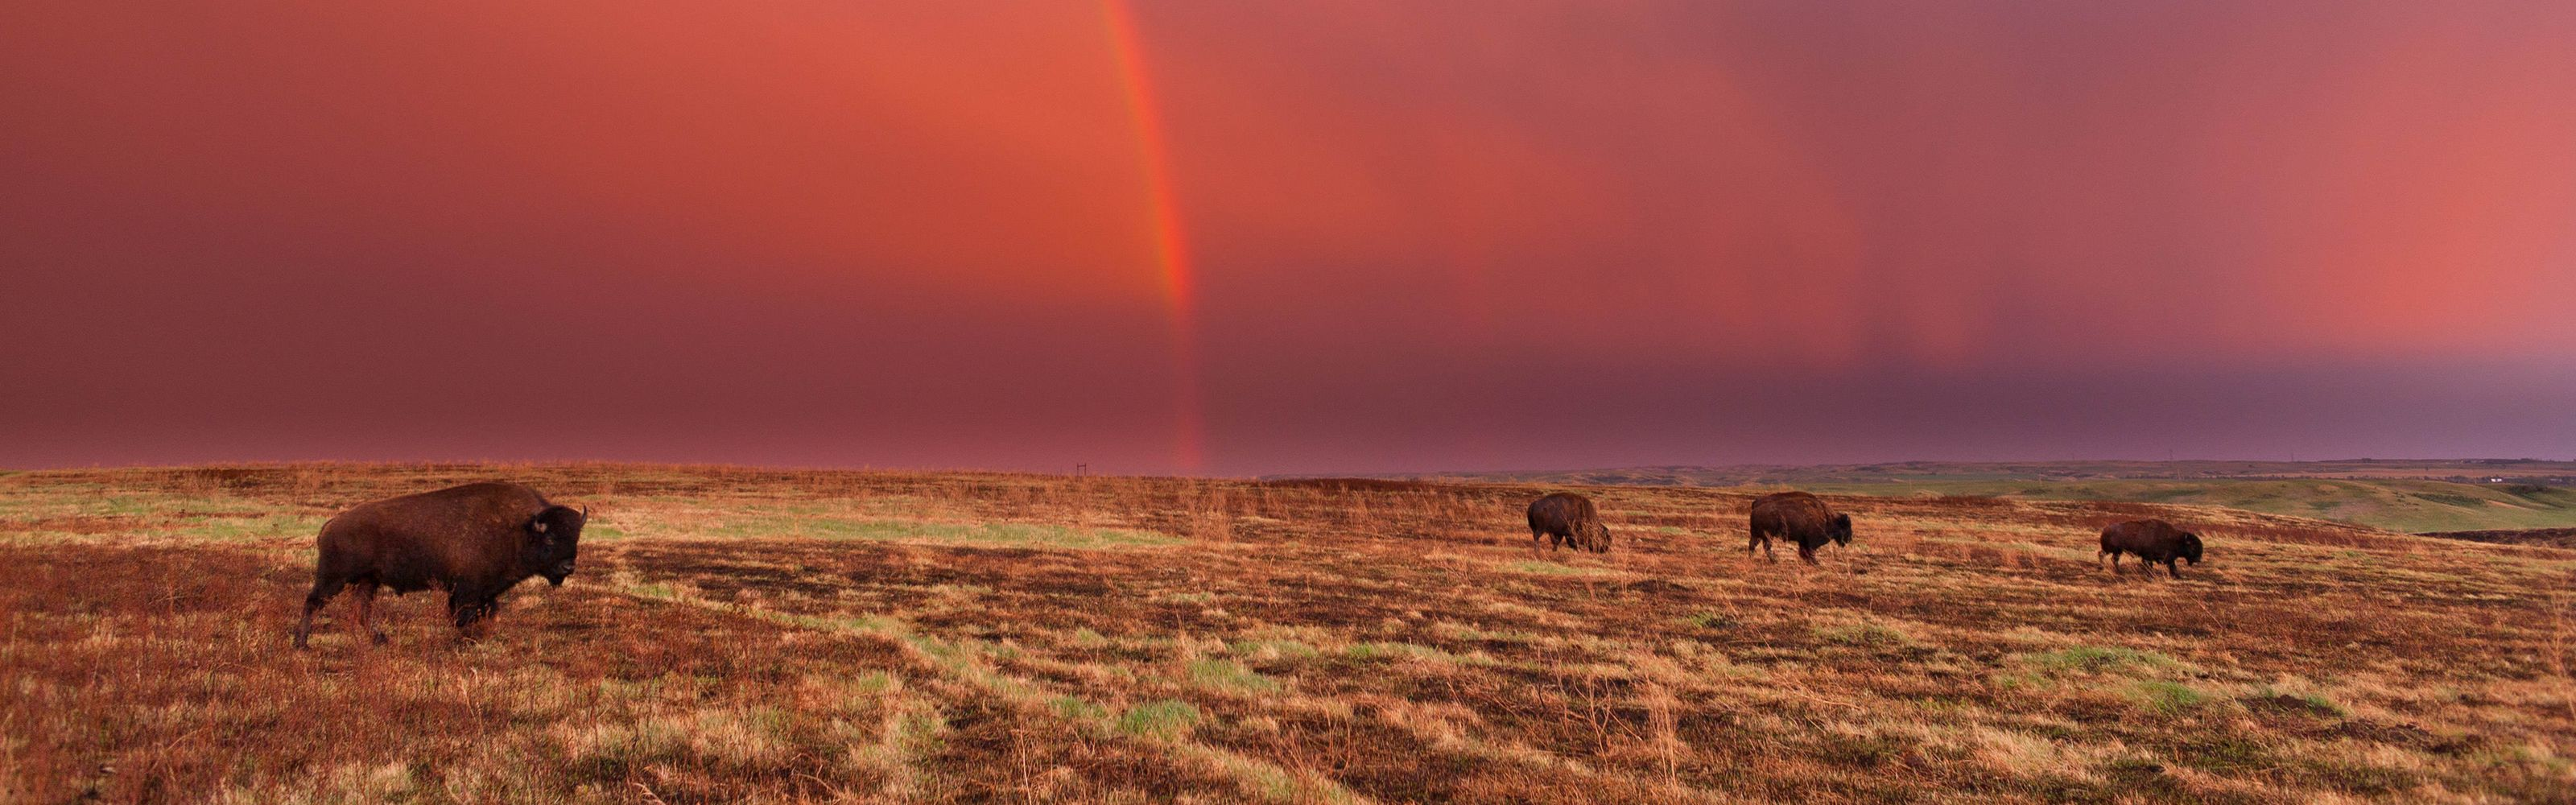 Bison and rainbow at TNC's Cross Ranch preserve in North Dakota.